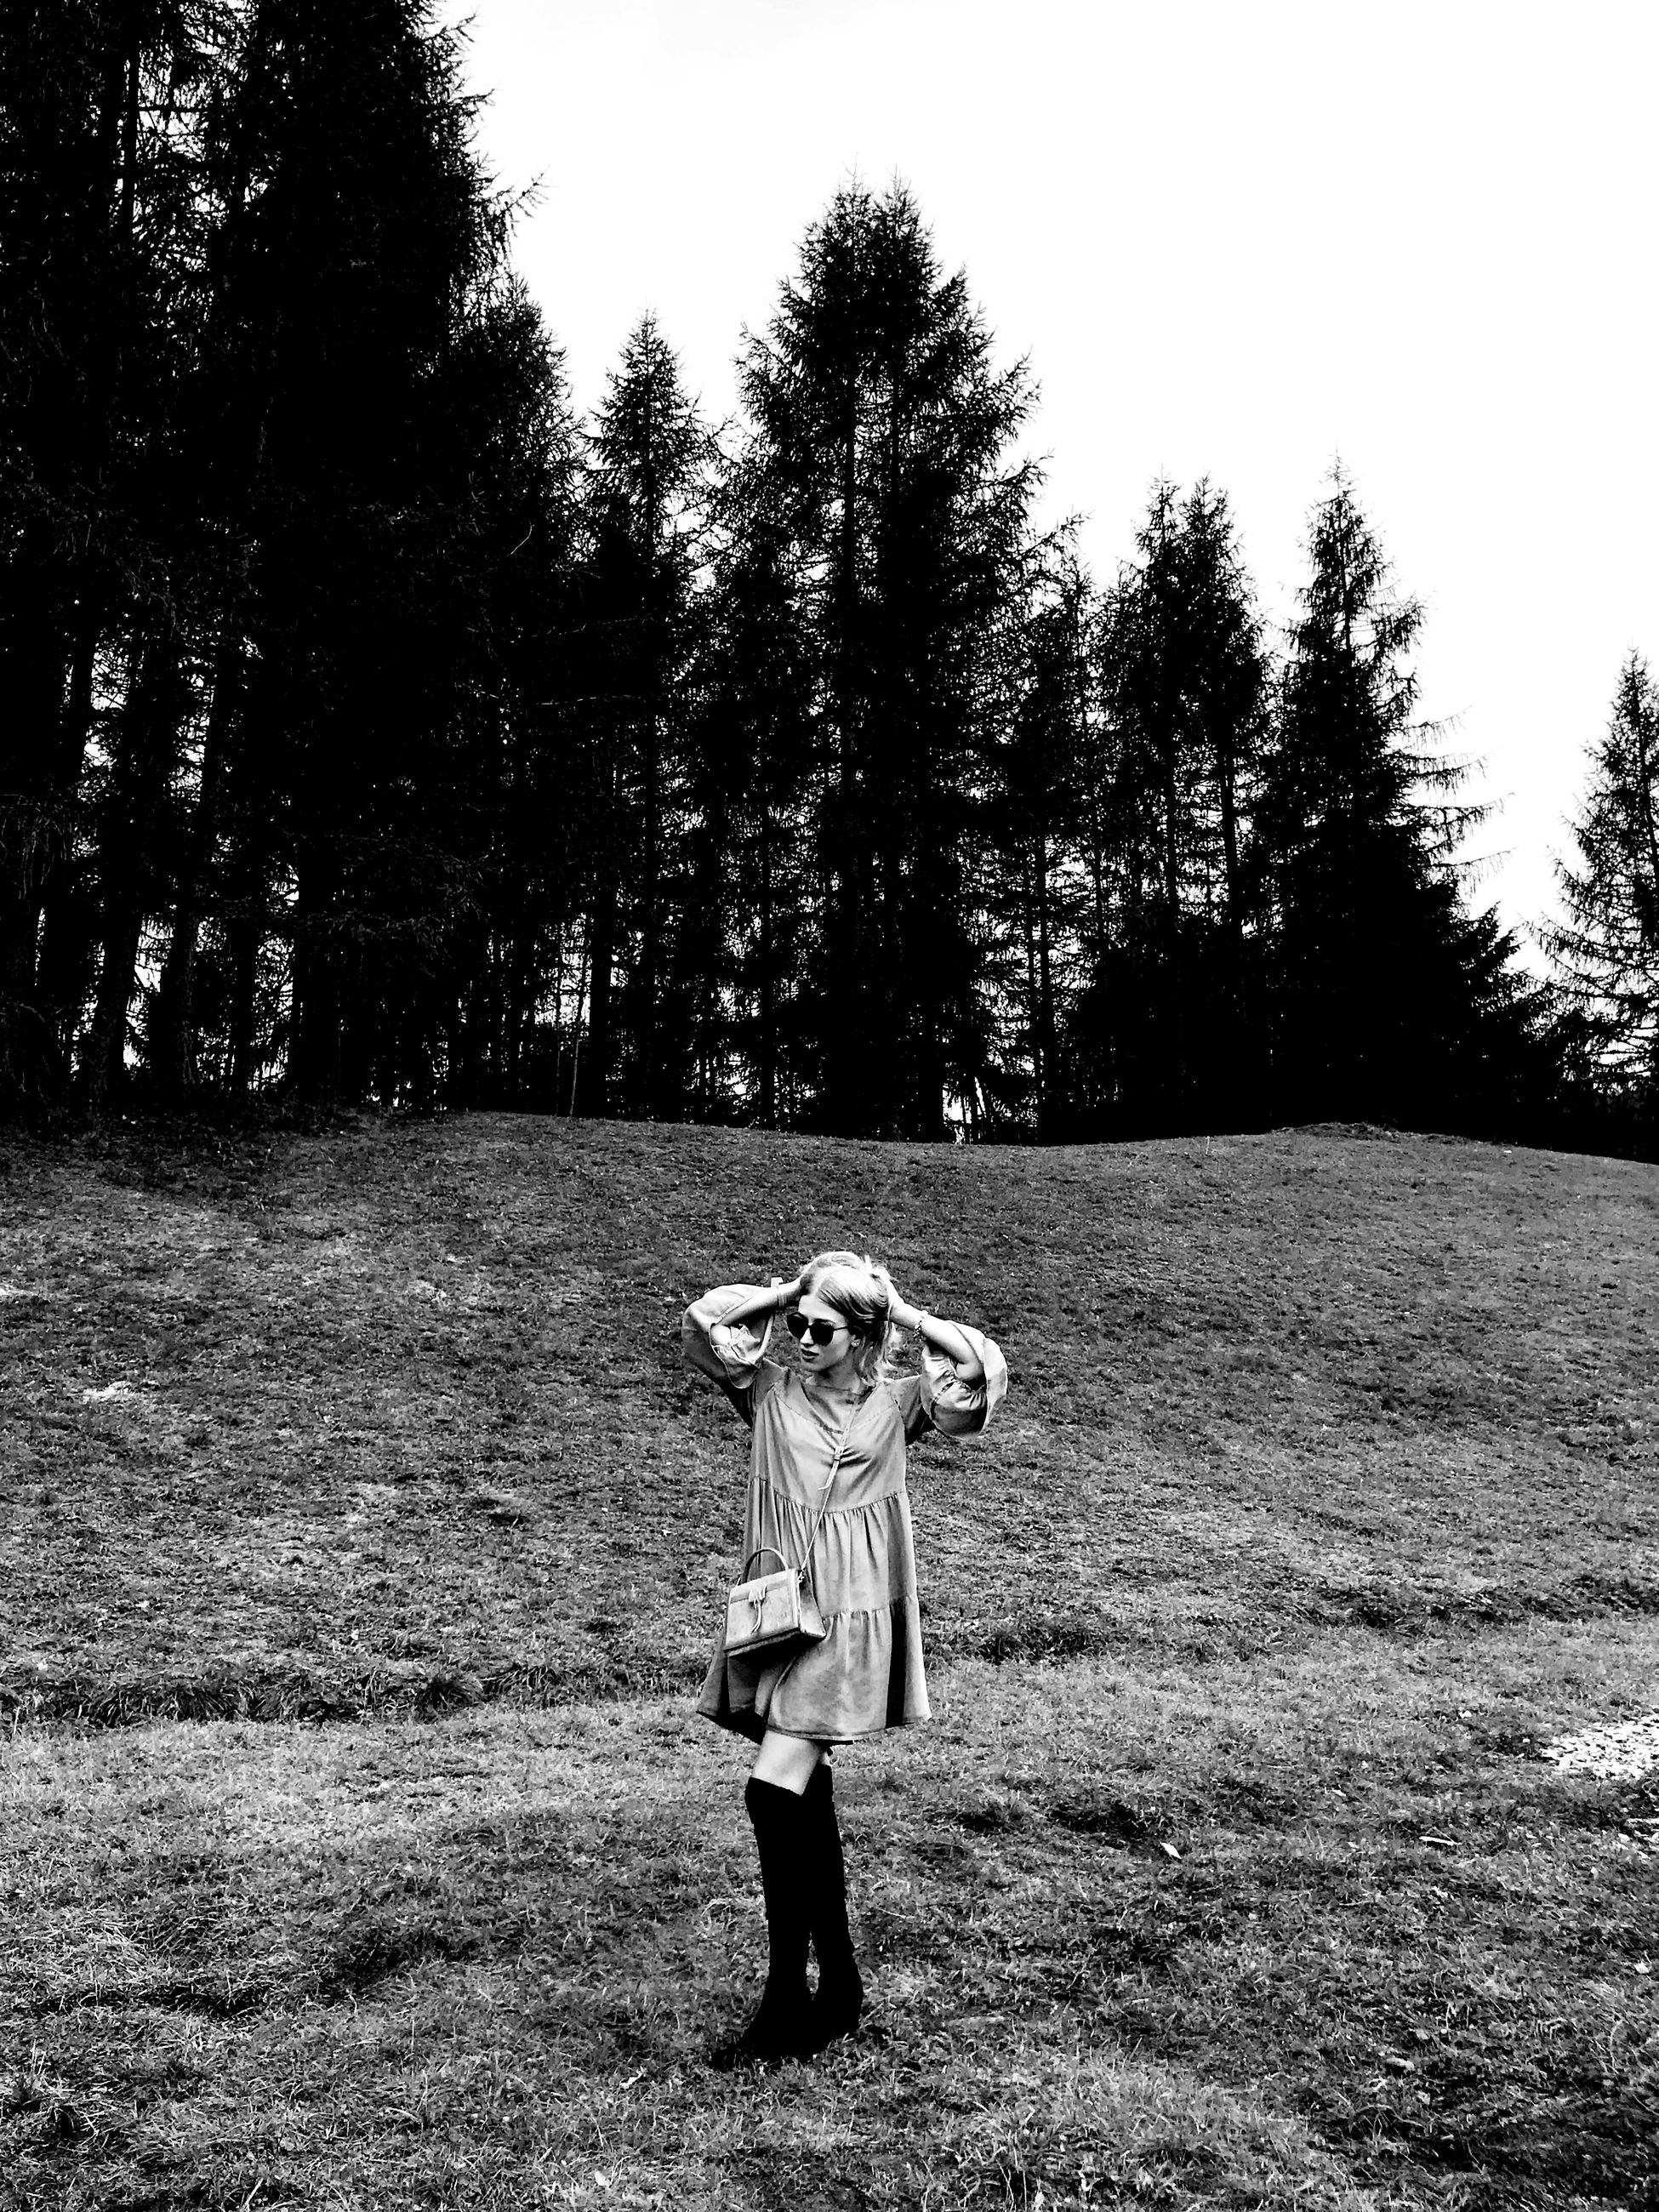 tree, plant, land, real people, one person, child, field, front view, standing, leisure activity, childhood, lifestyles, nature, girls, day, casual clothing, full length, grass, growth, human arm, teenager, innocence